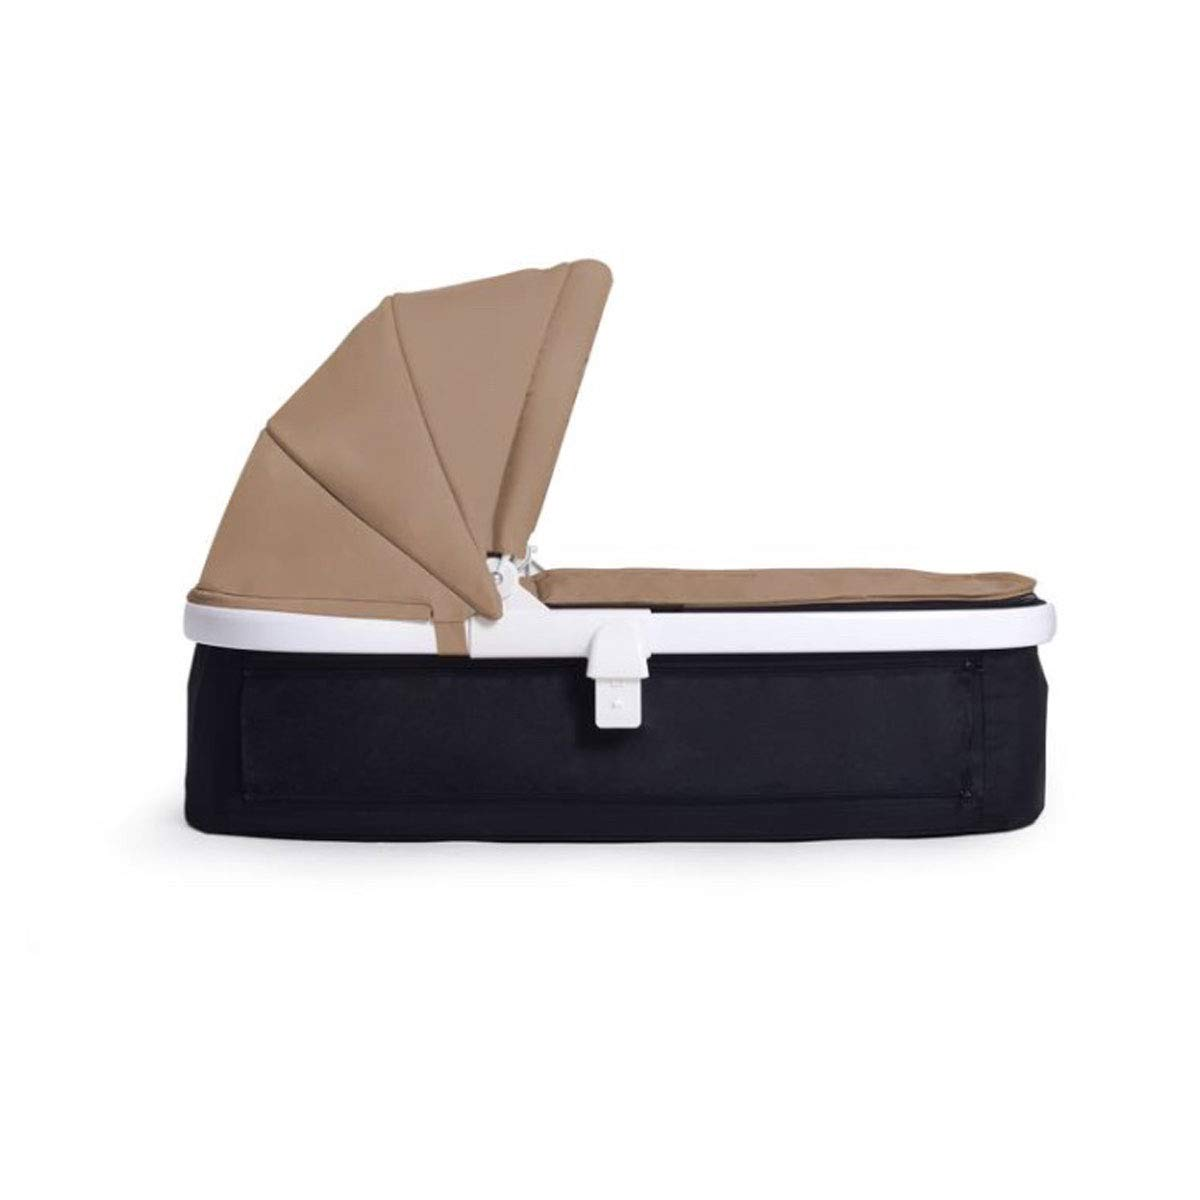 Milkbe MCC-280218-SA Carry Cot - Gold